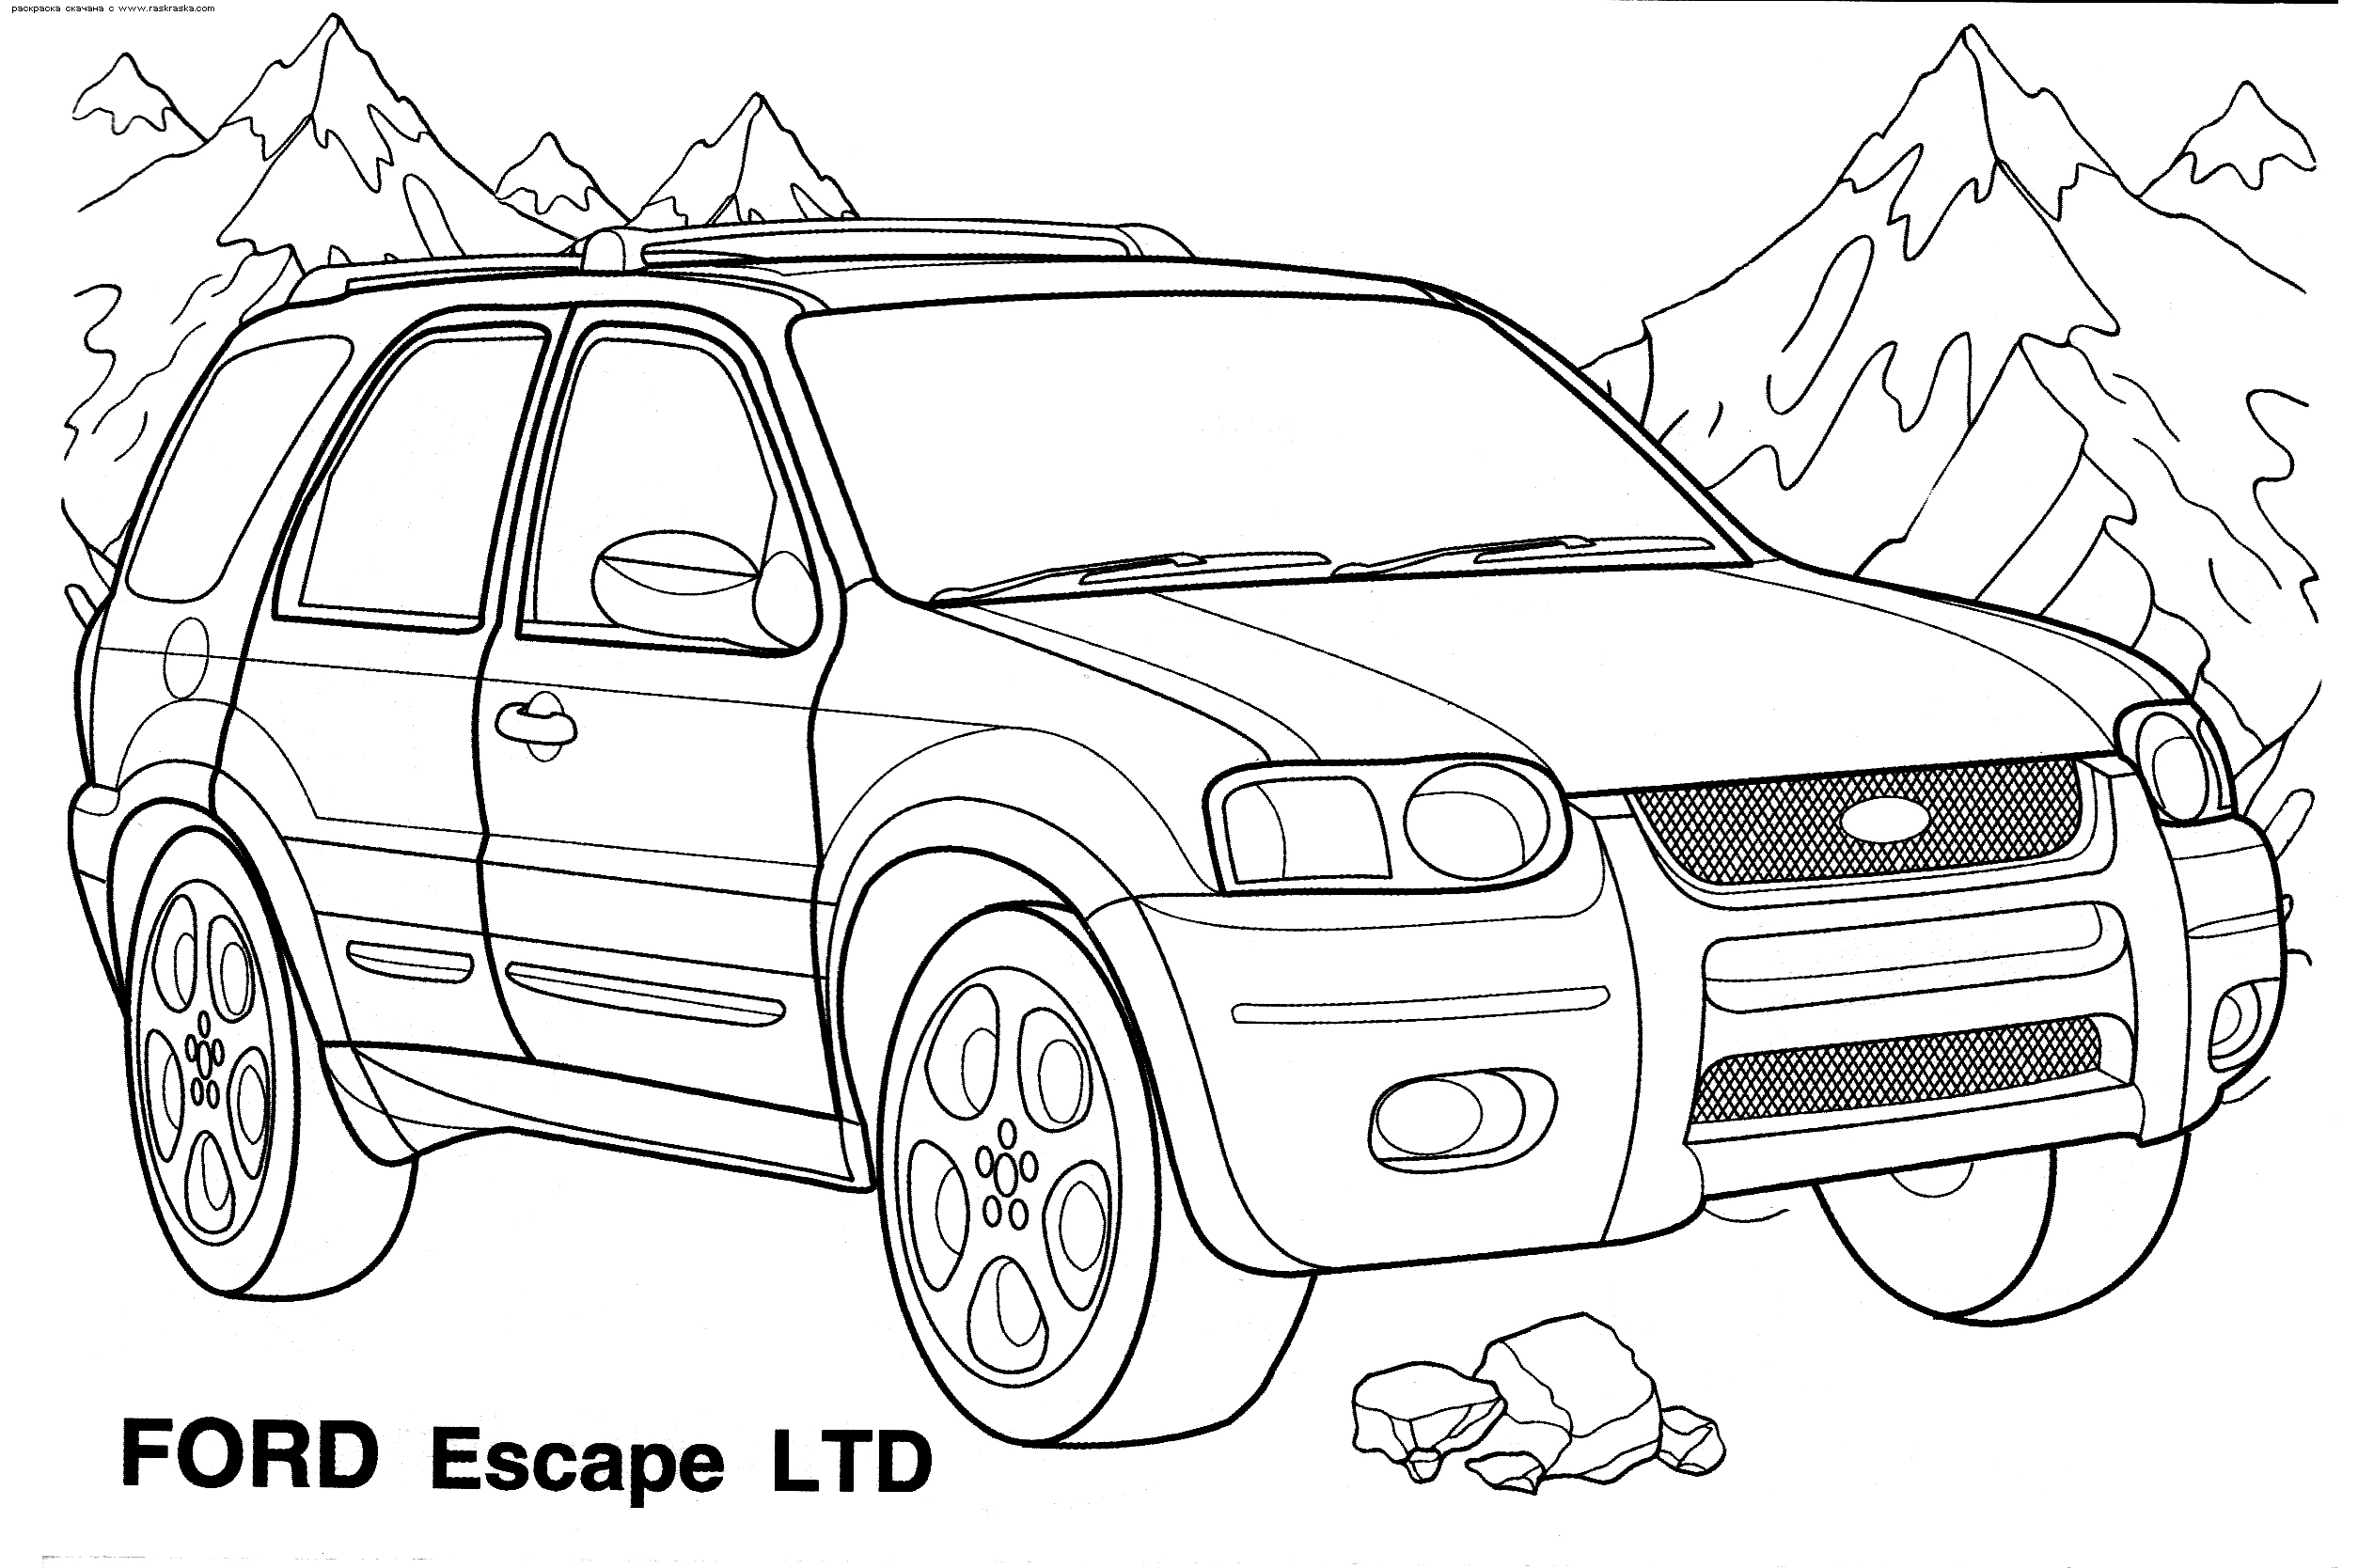 Coloring Pages Cars Best Cars Ice Colouring Pages U2013 Logo And Collection Of Coloring  Pages Cars